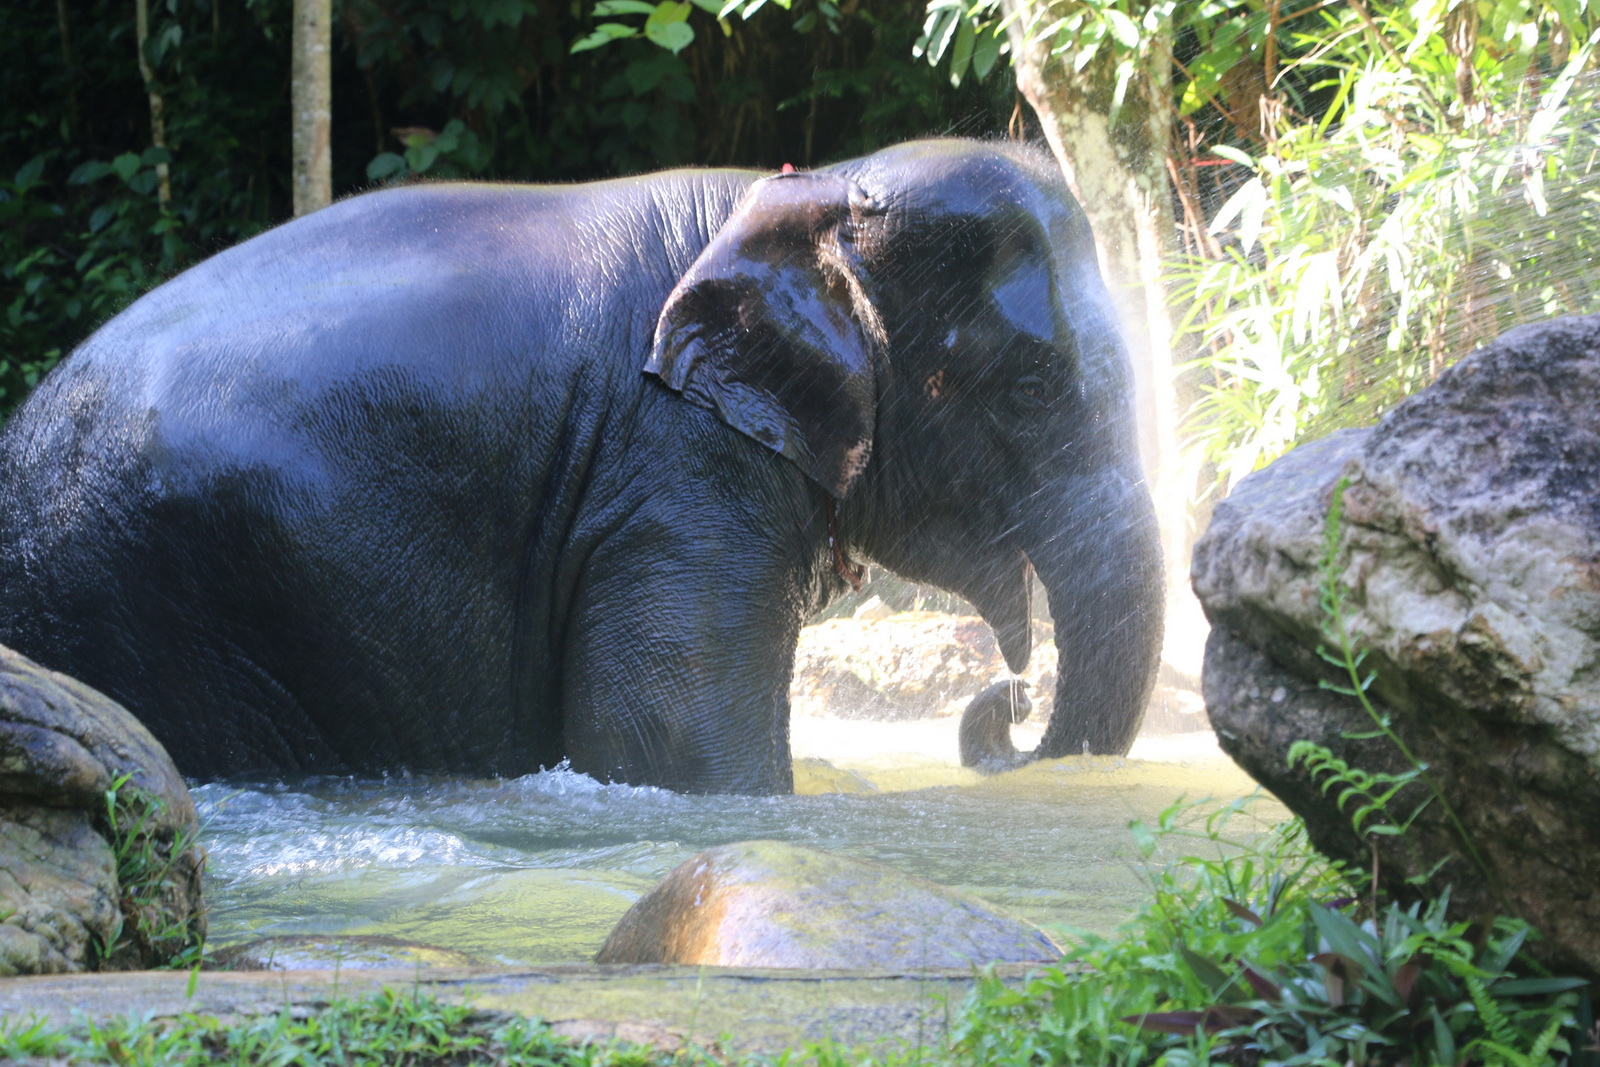 Elephant Friendly And Thai Culture Experience